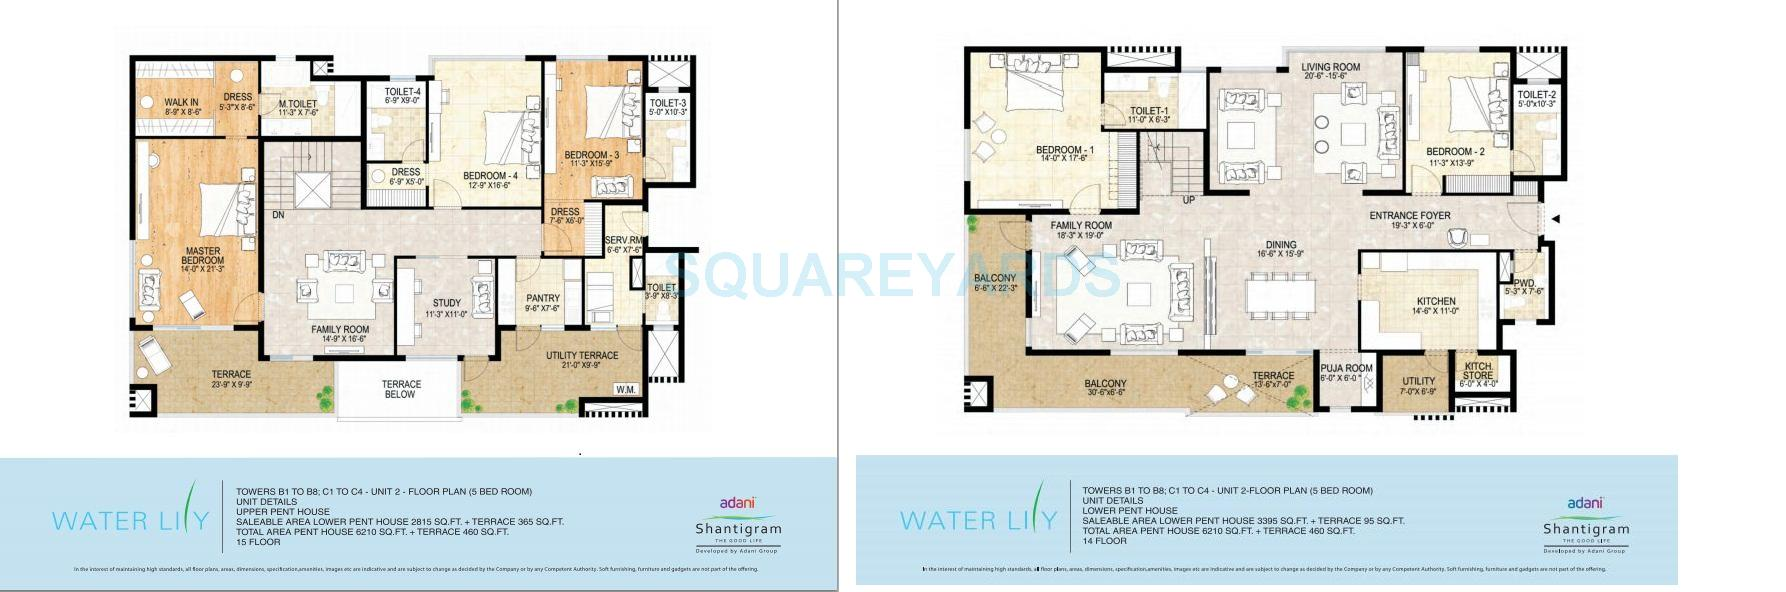 5 Bhk 6120 Sq Ft Penthouse For Sale In Adani Shantigram Water Lily At Rs 3650 Sq Ft Ahmedabad